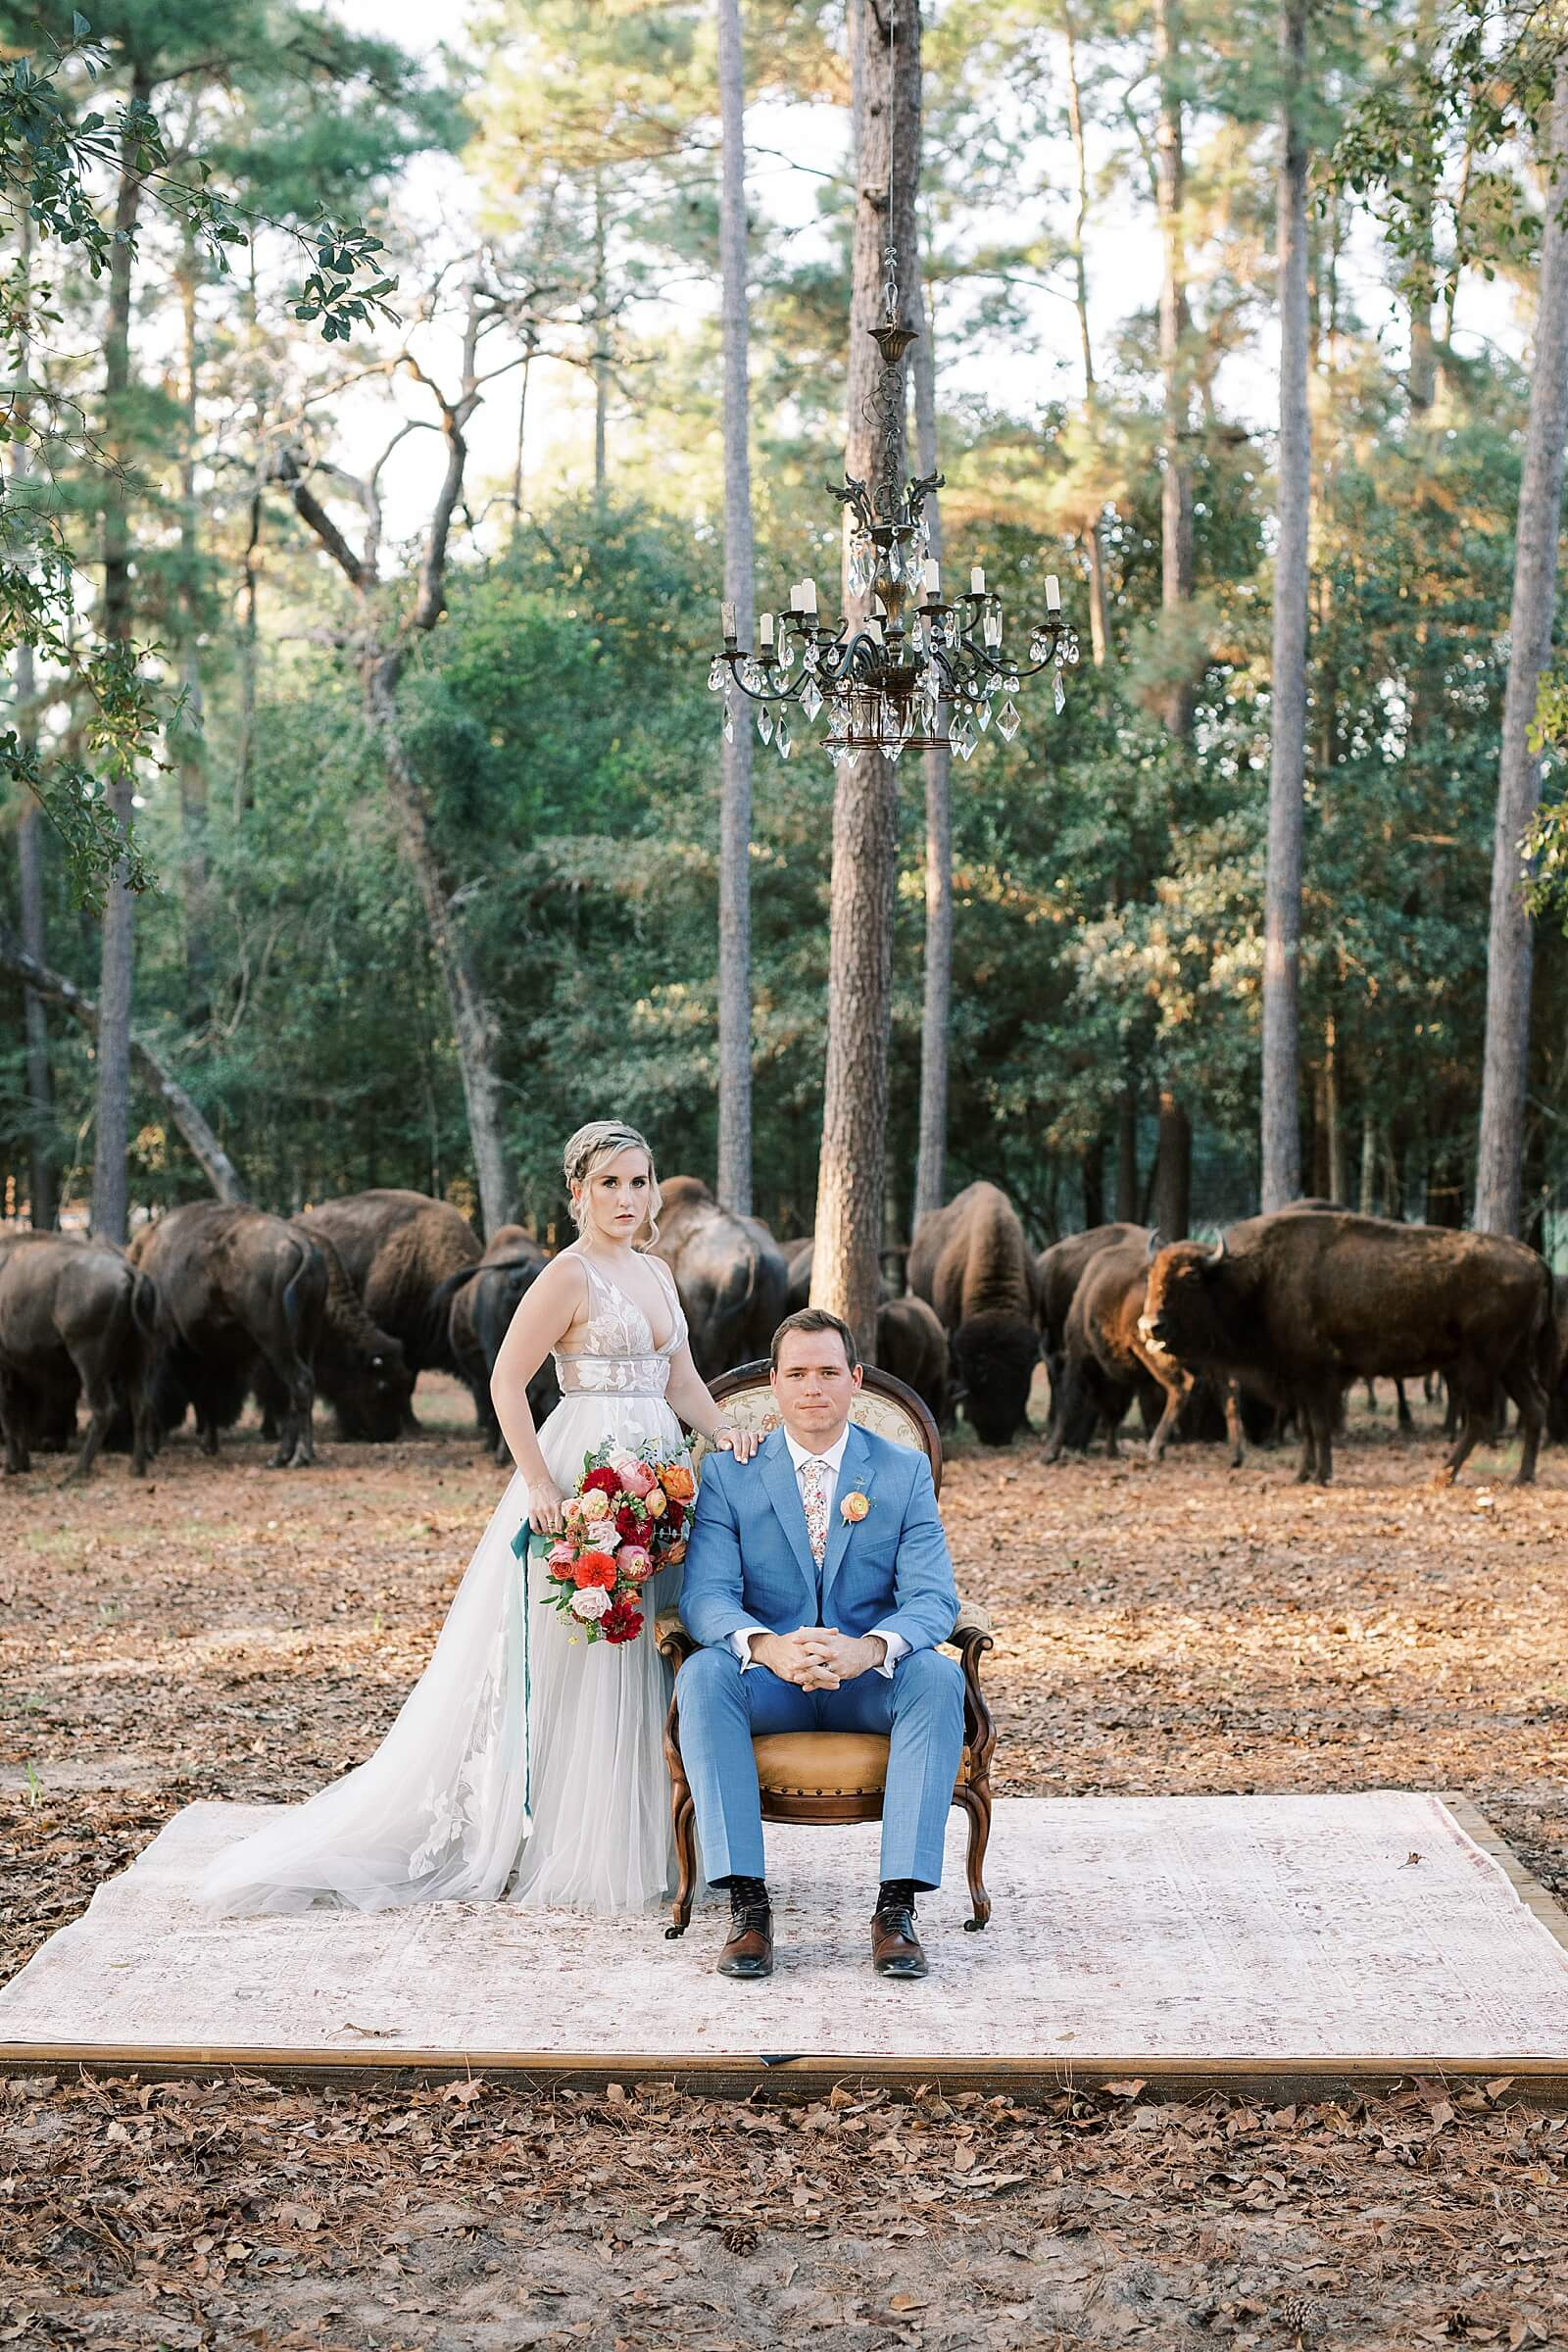 Couple poses dramatically under chandelier with buffalo walking behind them at The Annex wedding venue